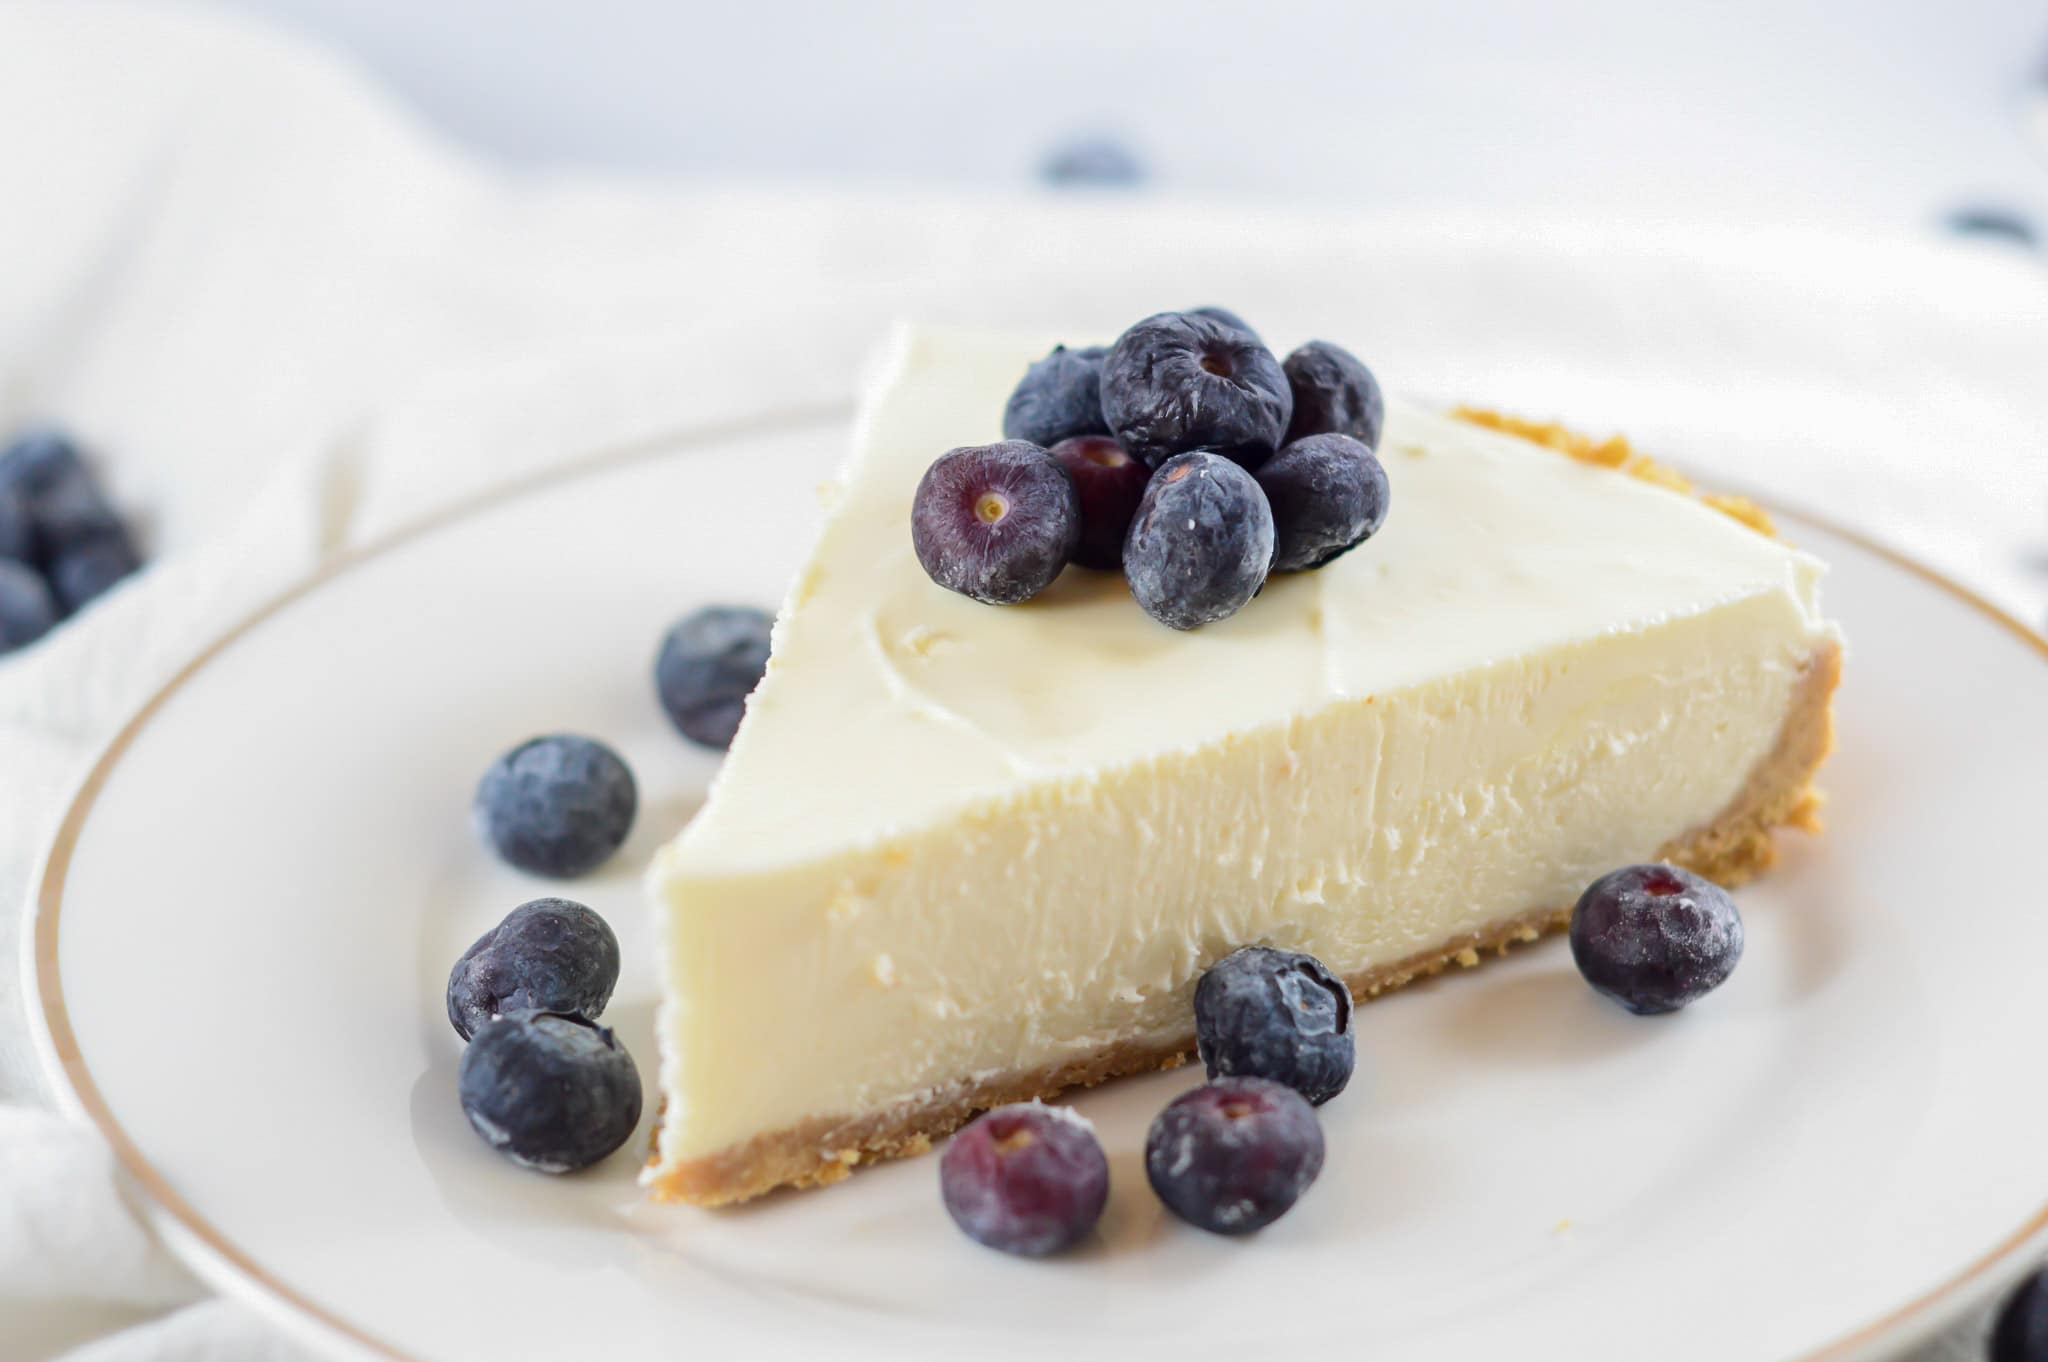 a slice of no-bake cheesecake on a white plate with fresh blueberries.